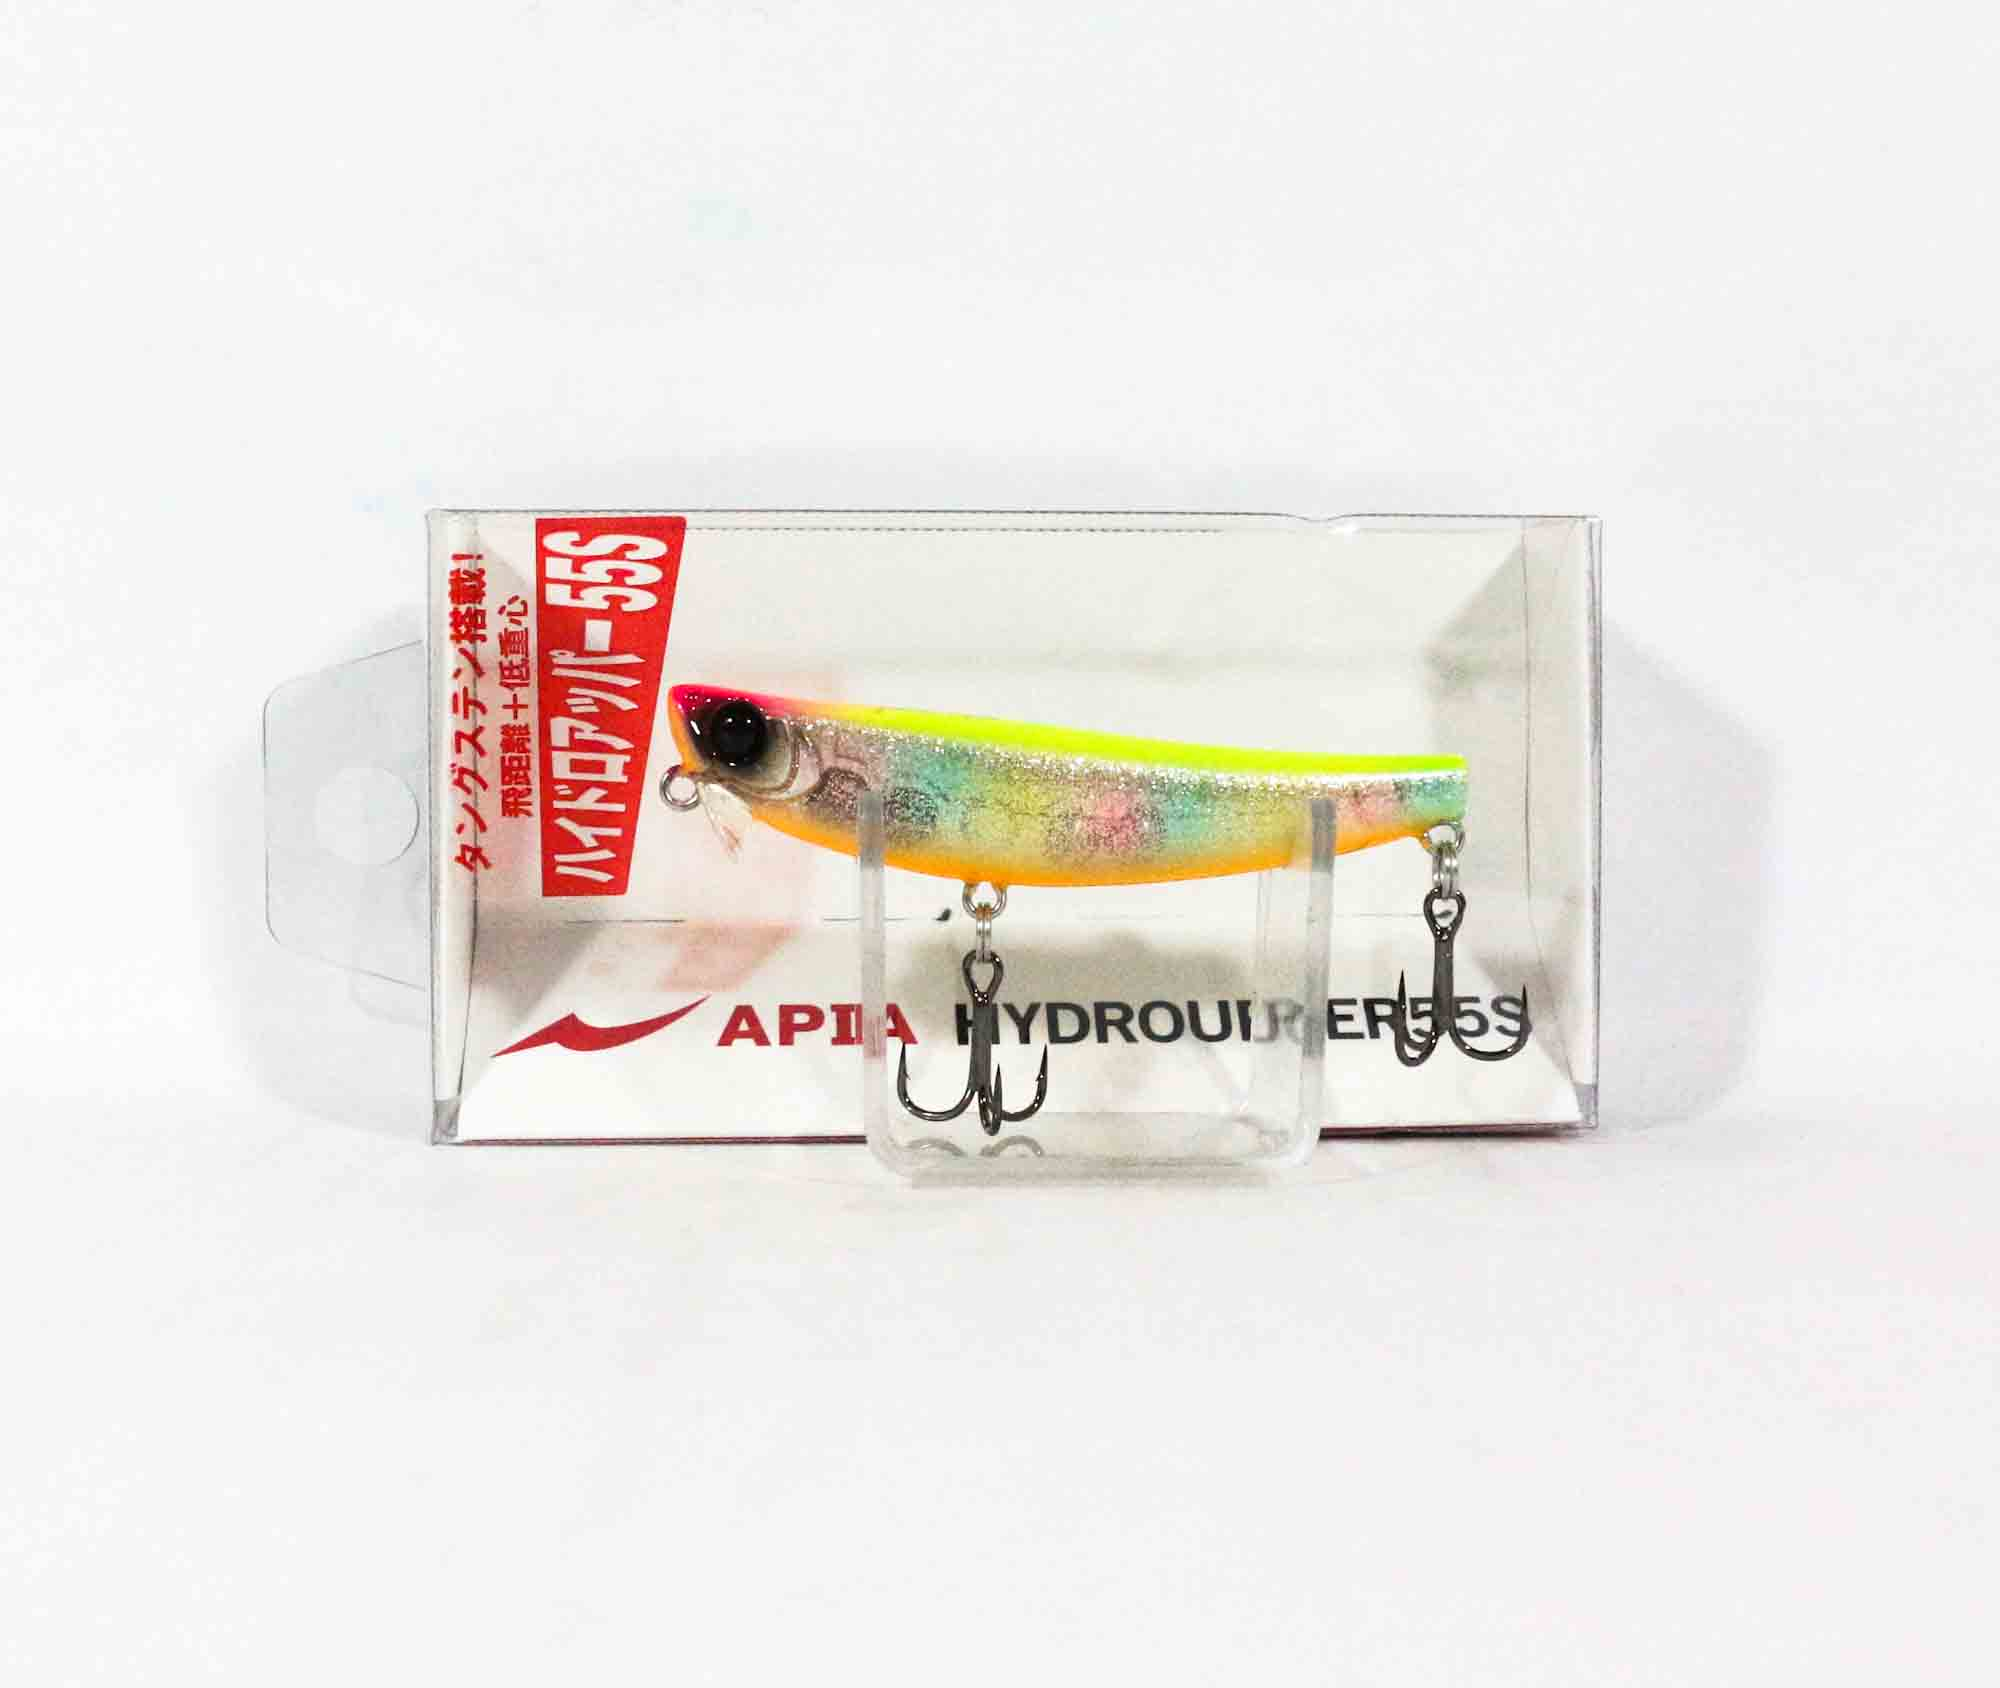 Apia Hydroupper 55S Sinking Lure 09 (6401)